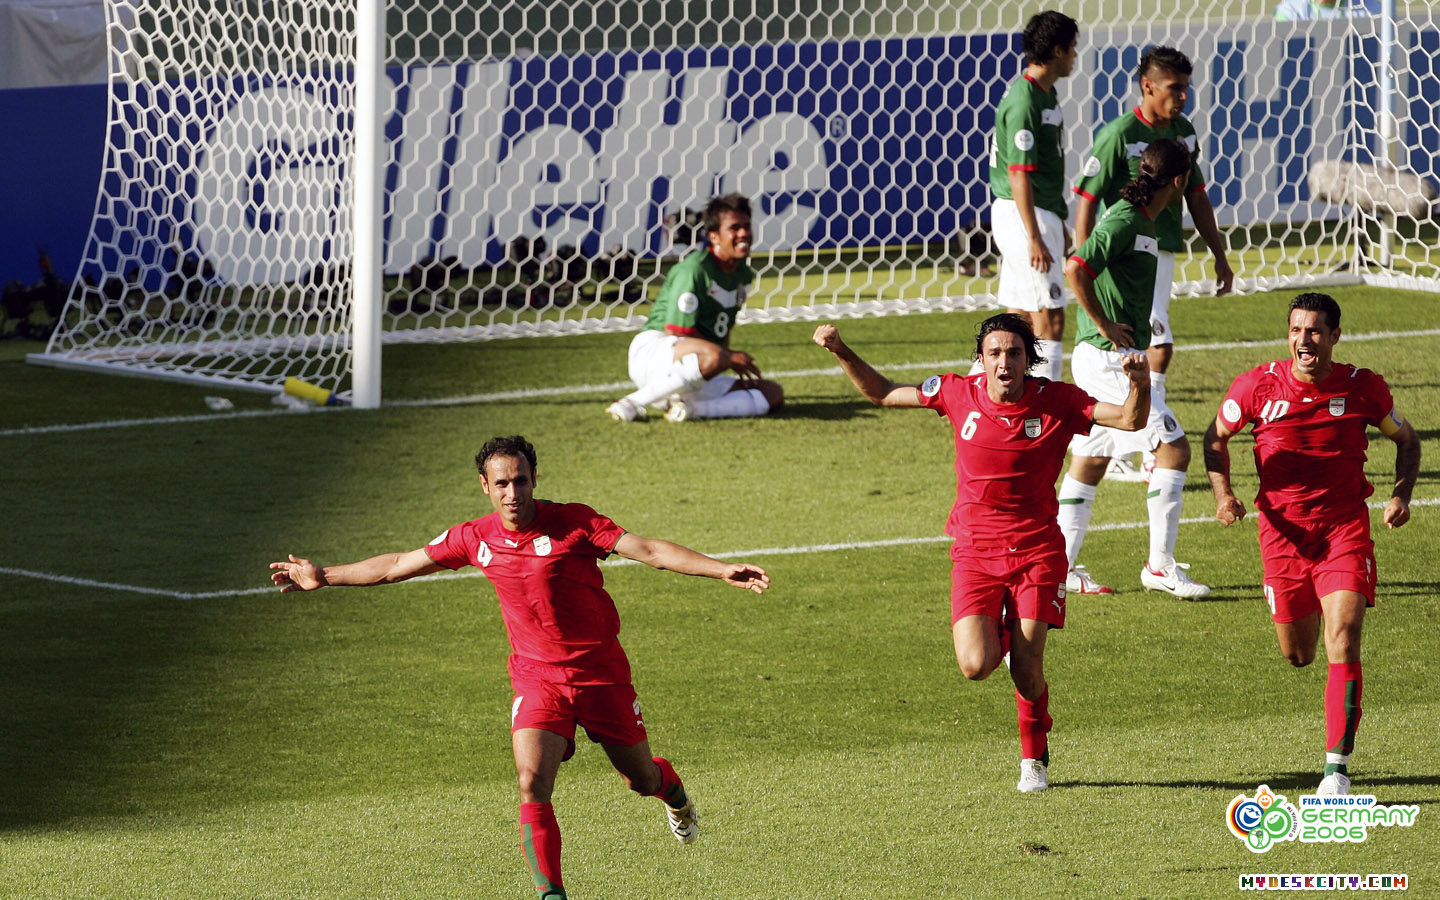 World Cup Wallpapers 11136